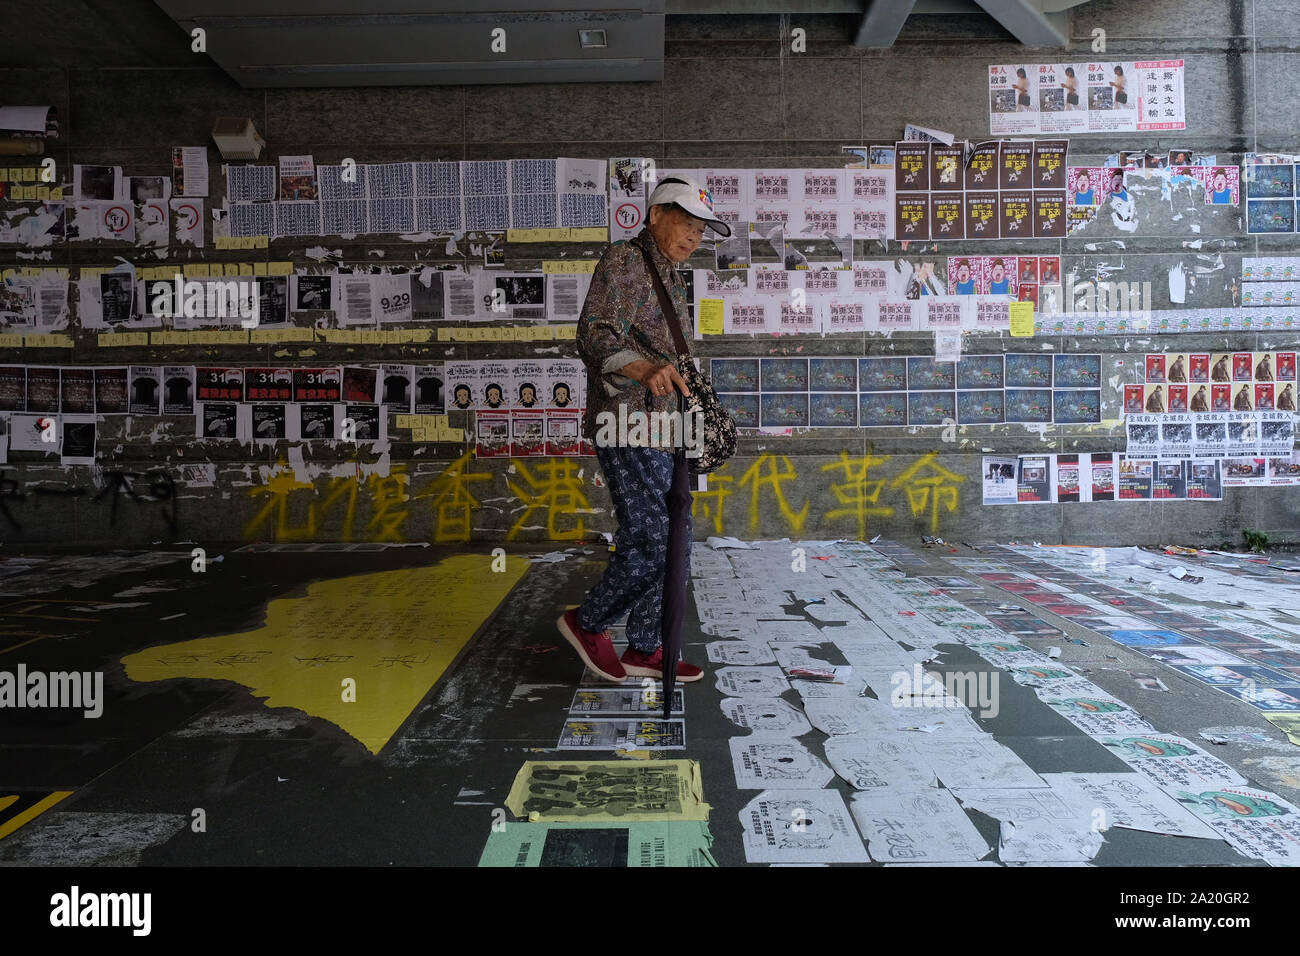 Posters and messages covering the walls and pavements in Kowloon, Hong Kong, where authorities have rejected an appeal for a major pro-democracy march on China's National Day holiday, following two straight days of violent clashes between protesters and police. Stock Photo